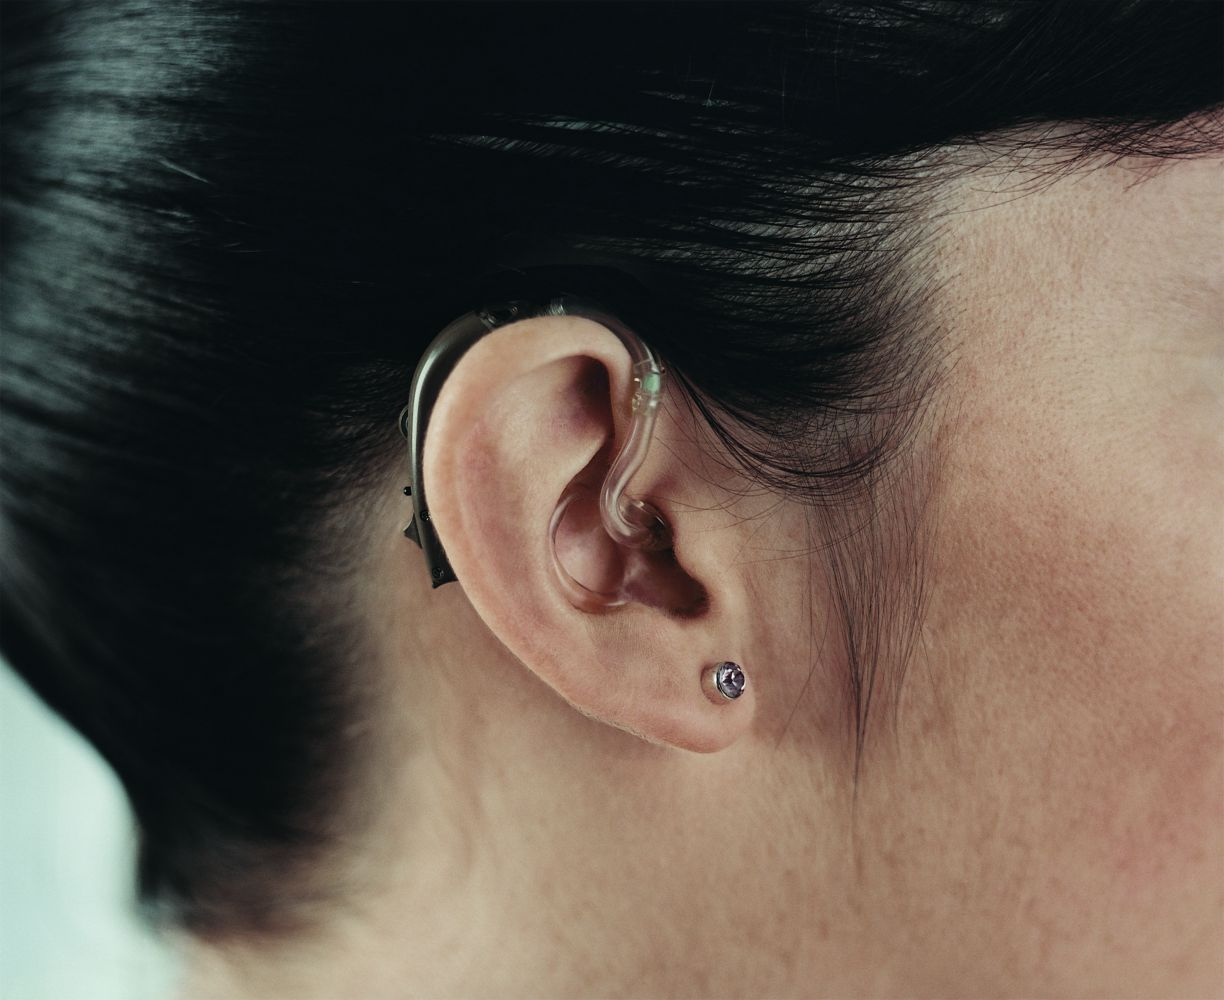 wearing hearing aid after hearing assessment in Honolulu, HI